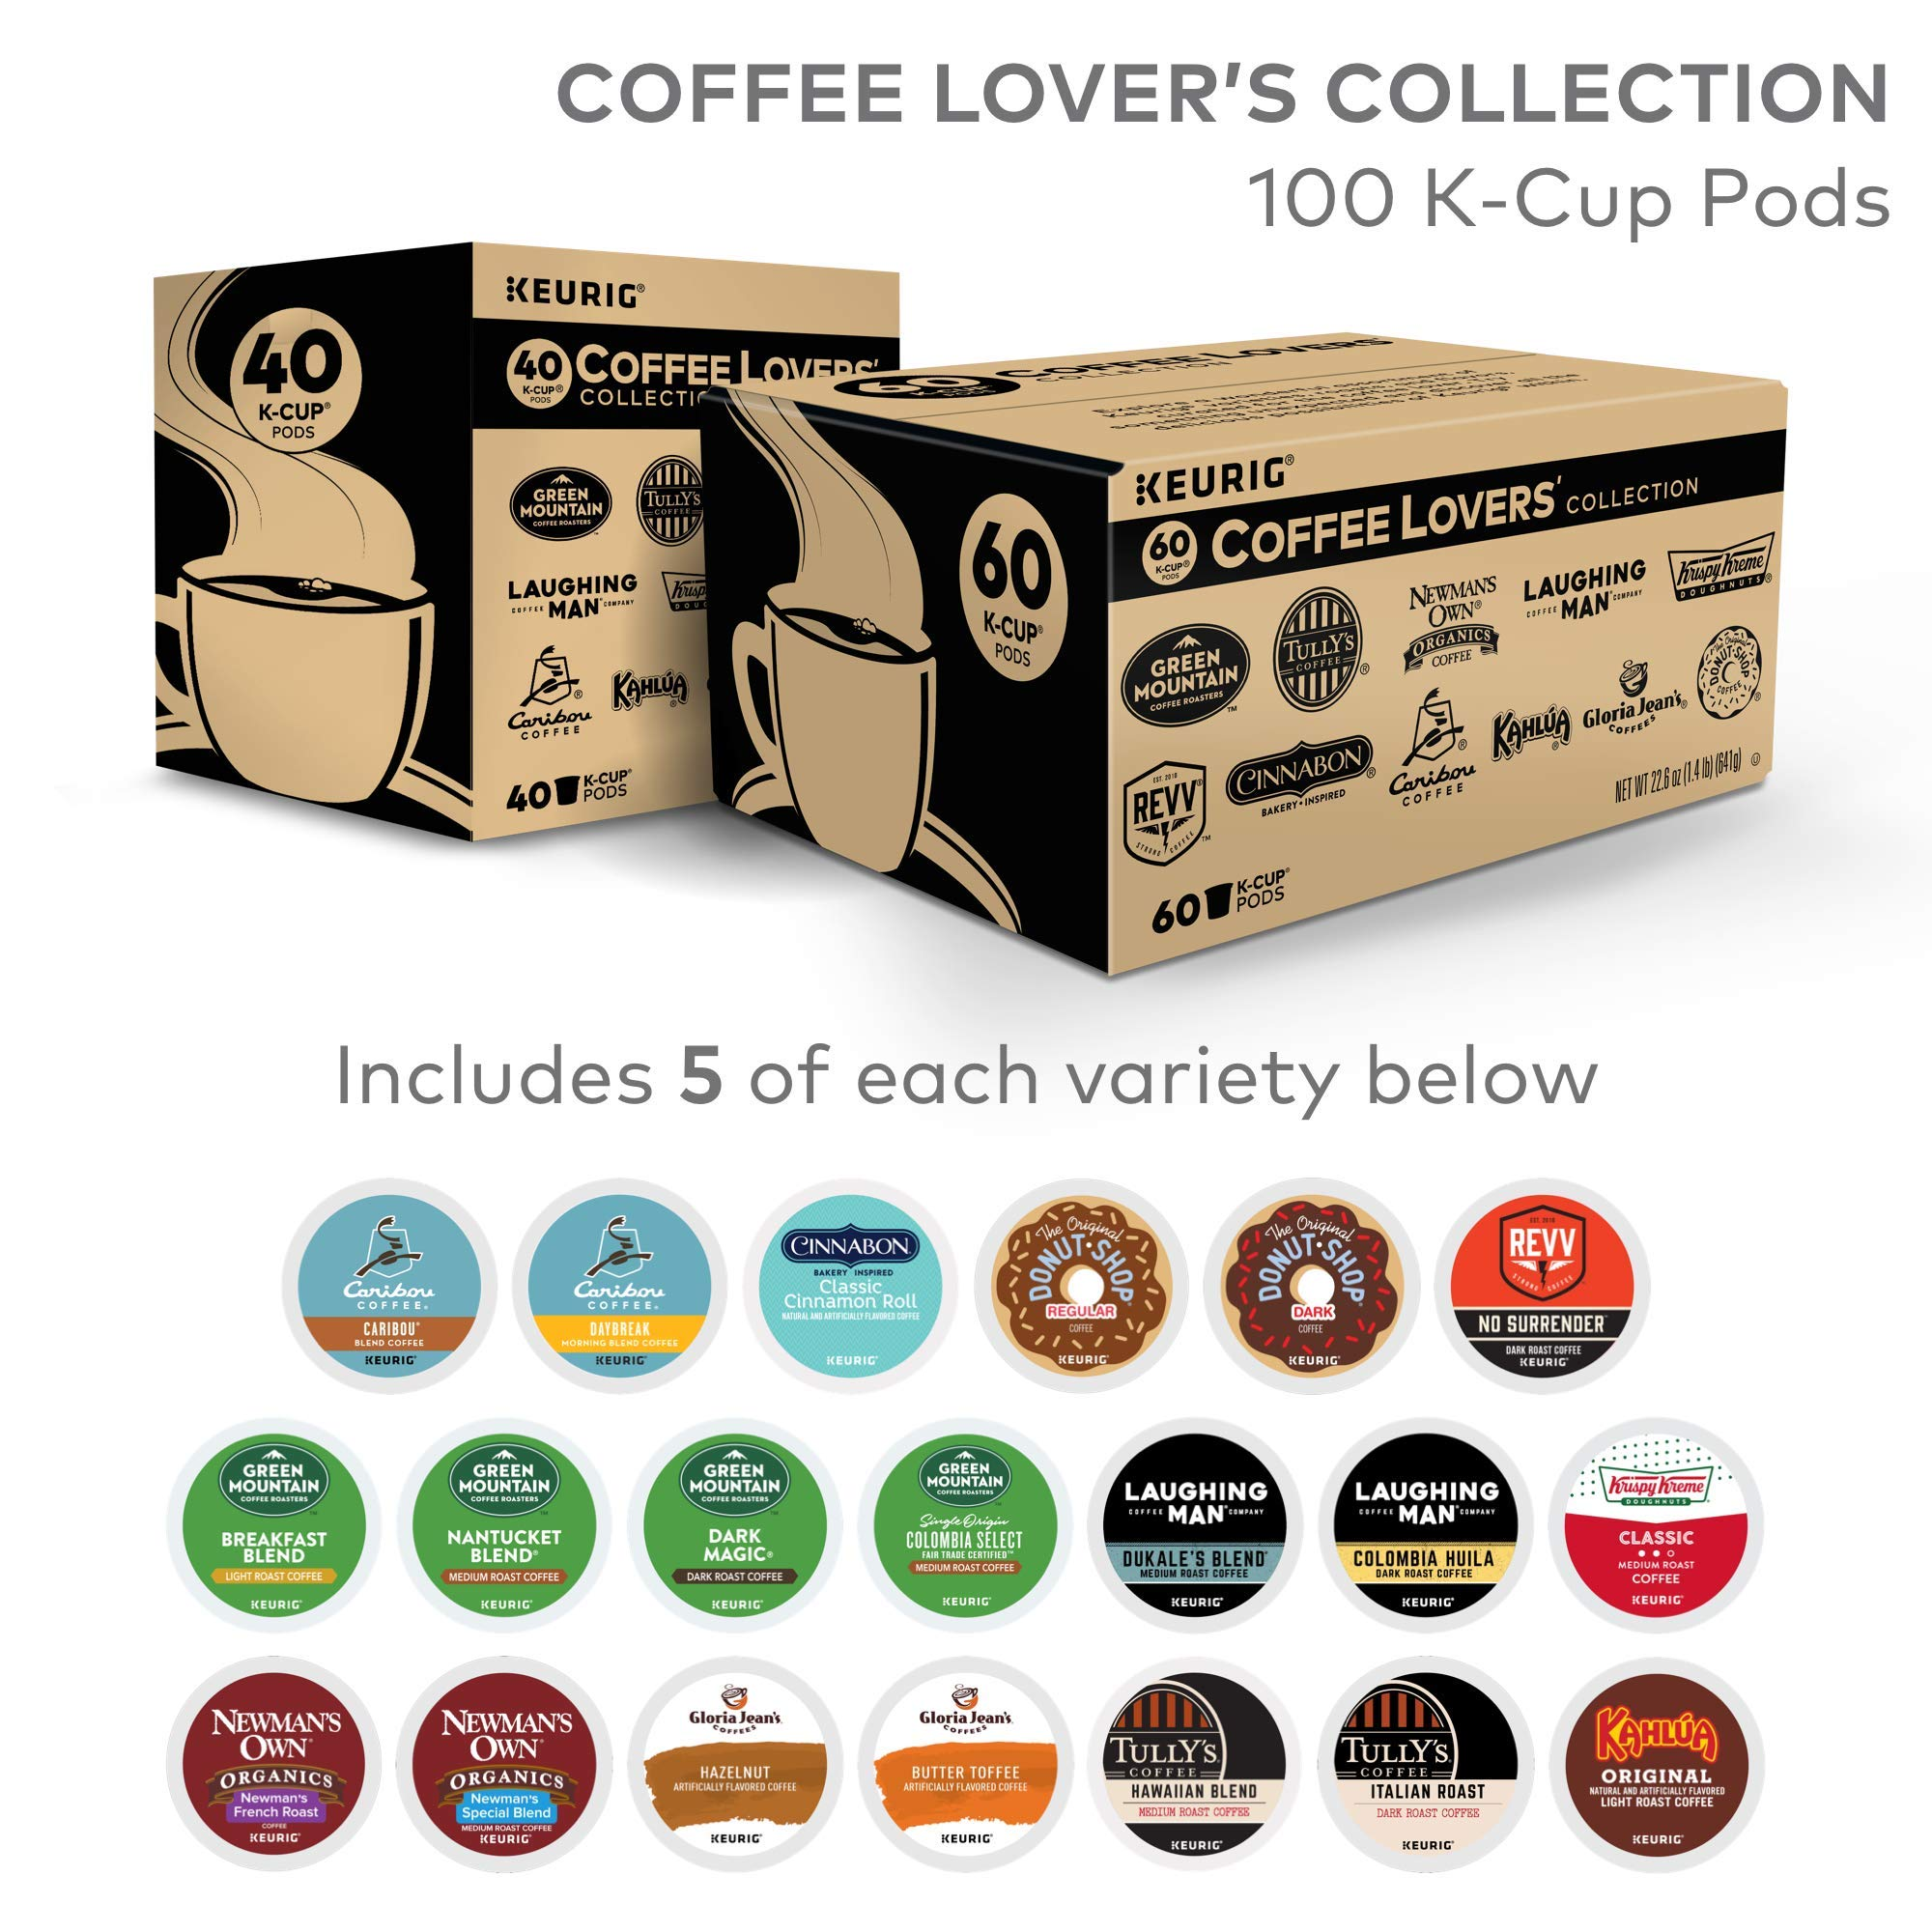 Keurig Coffee Lovers' Collection Variety Pack, Single Serve K-Cup Pods, Compatible with all Keurig 1.0/Classic, 2.0 and K-Café Coffee Makers, 100 Count by Keurig